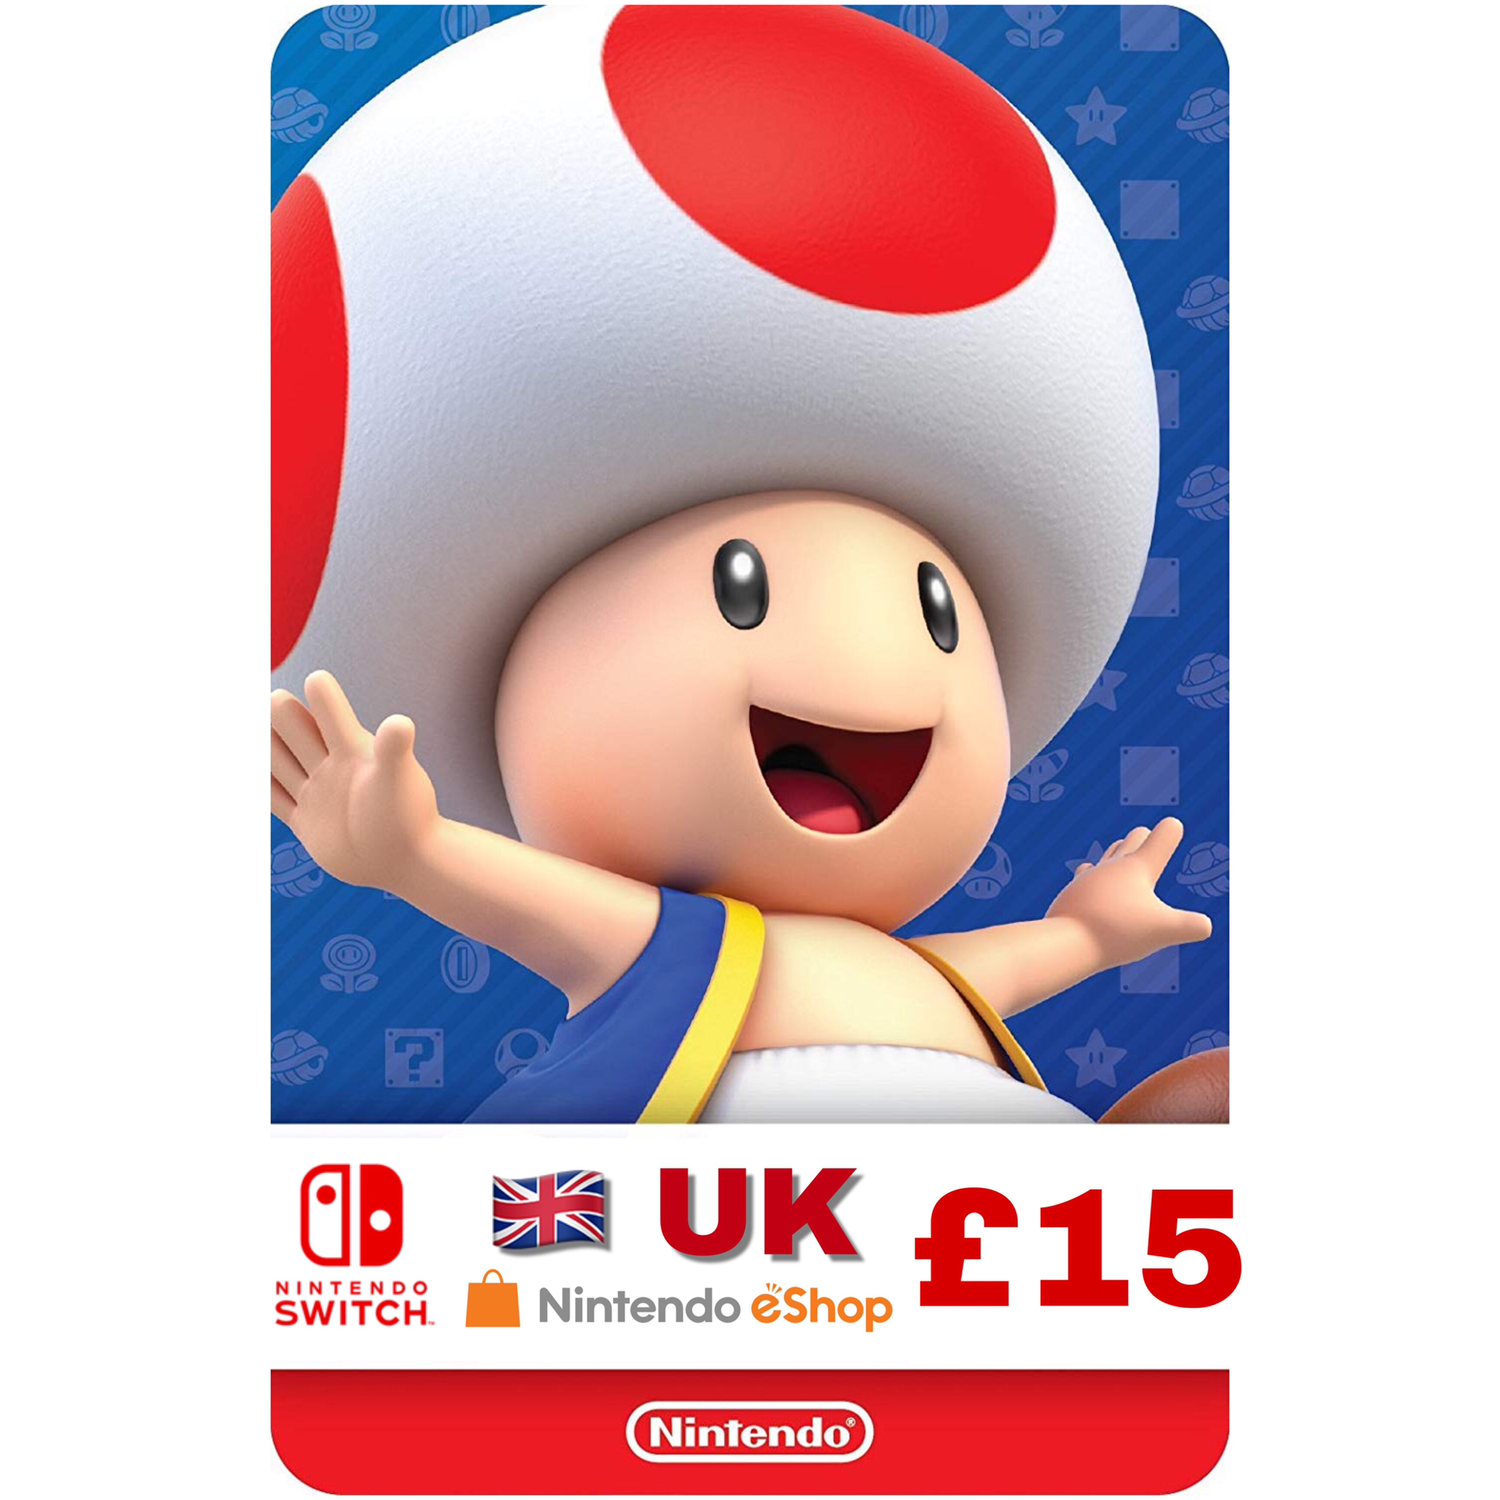 Nintendo eShop Card UK £15